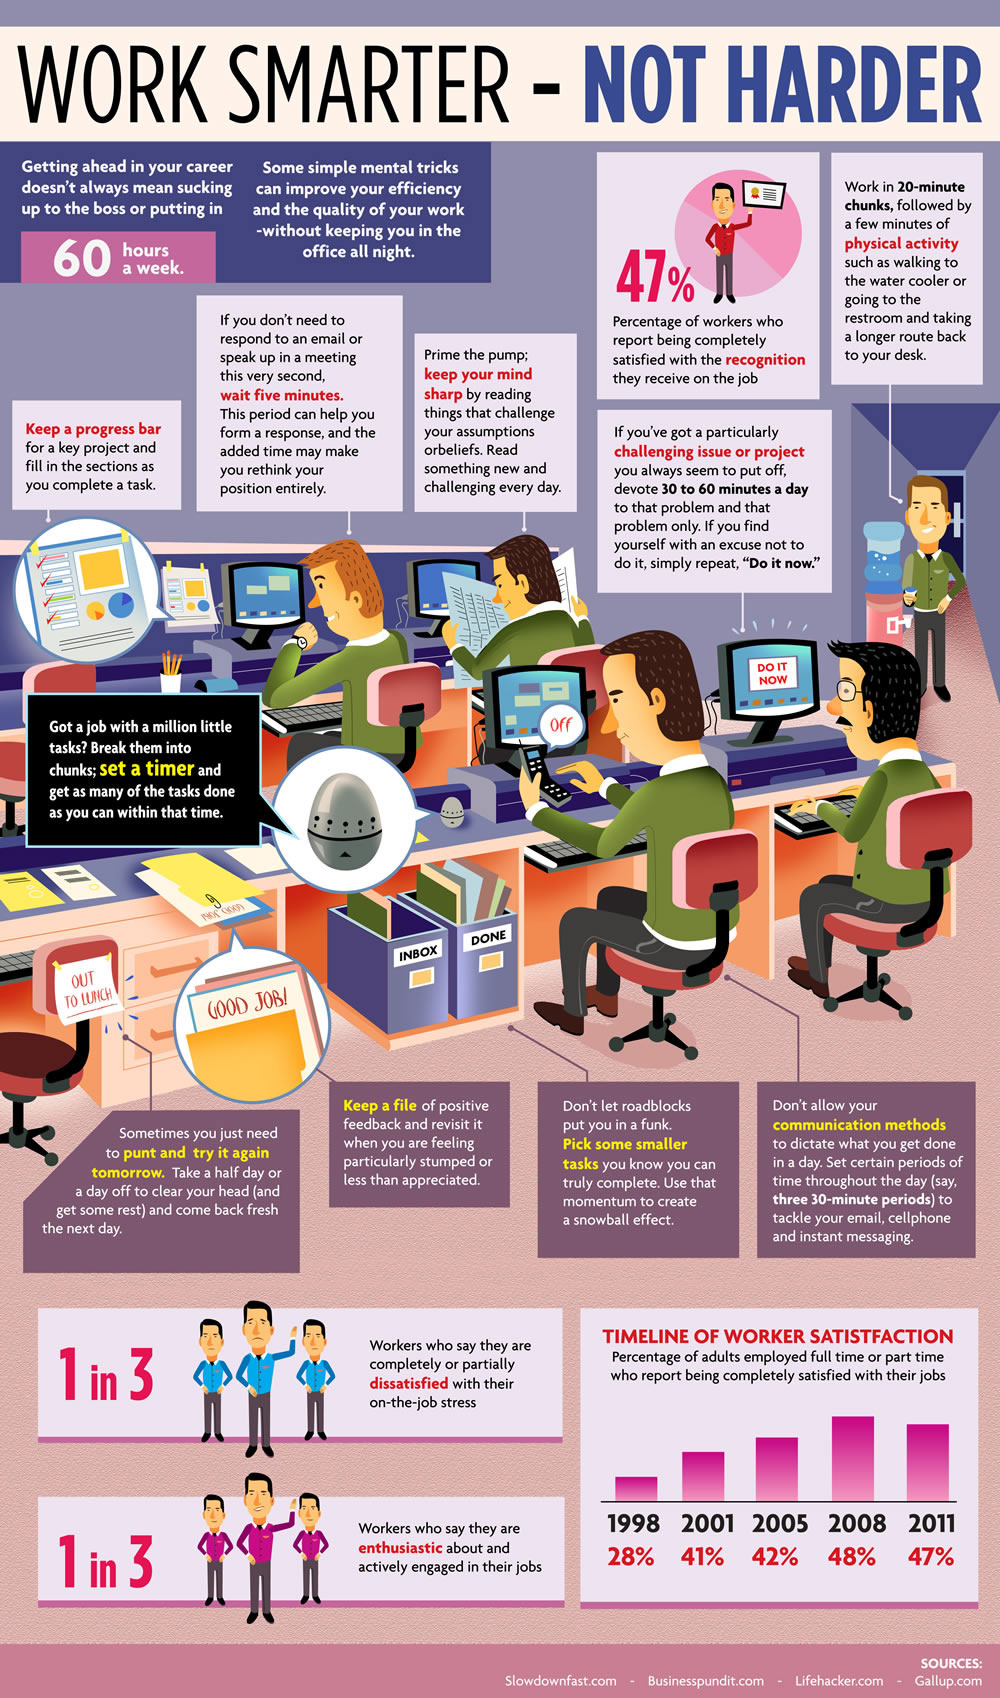 Work-Smarter-Not-Harder-Infographic